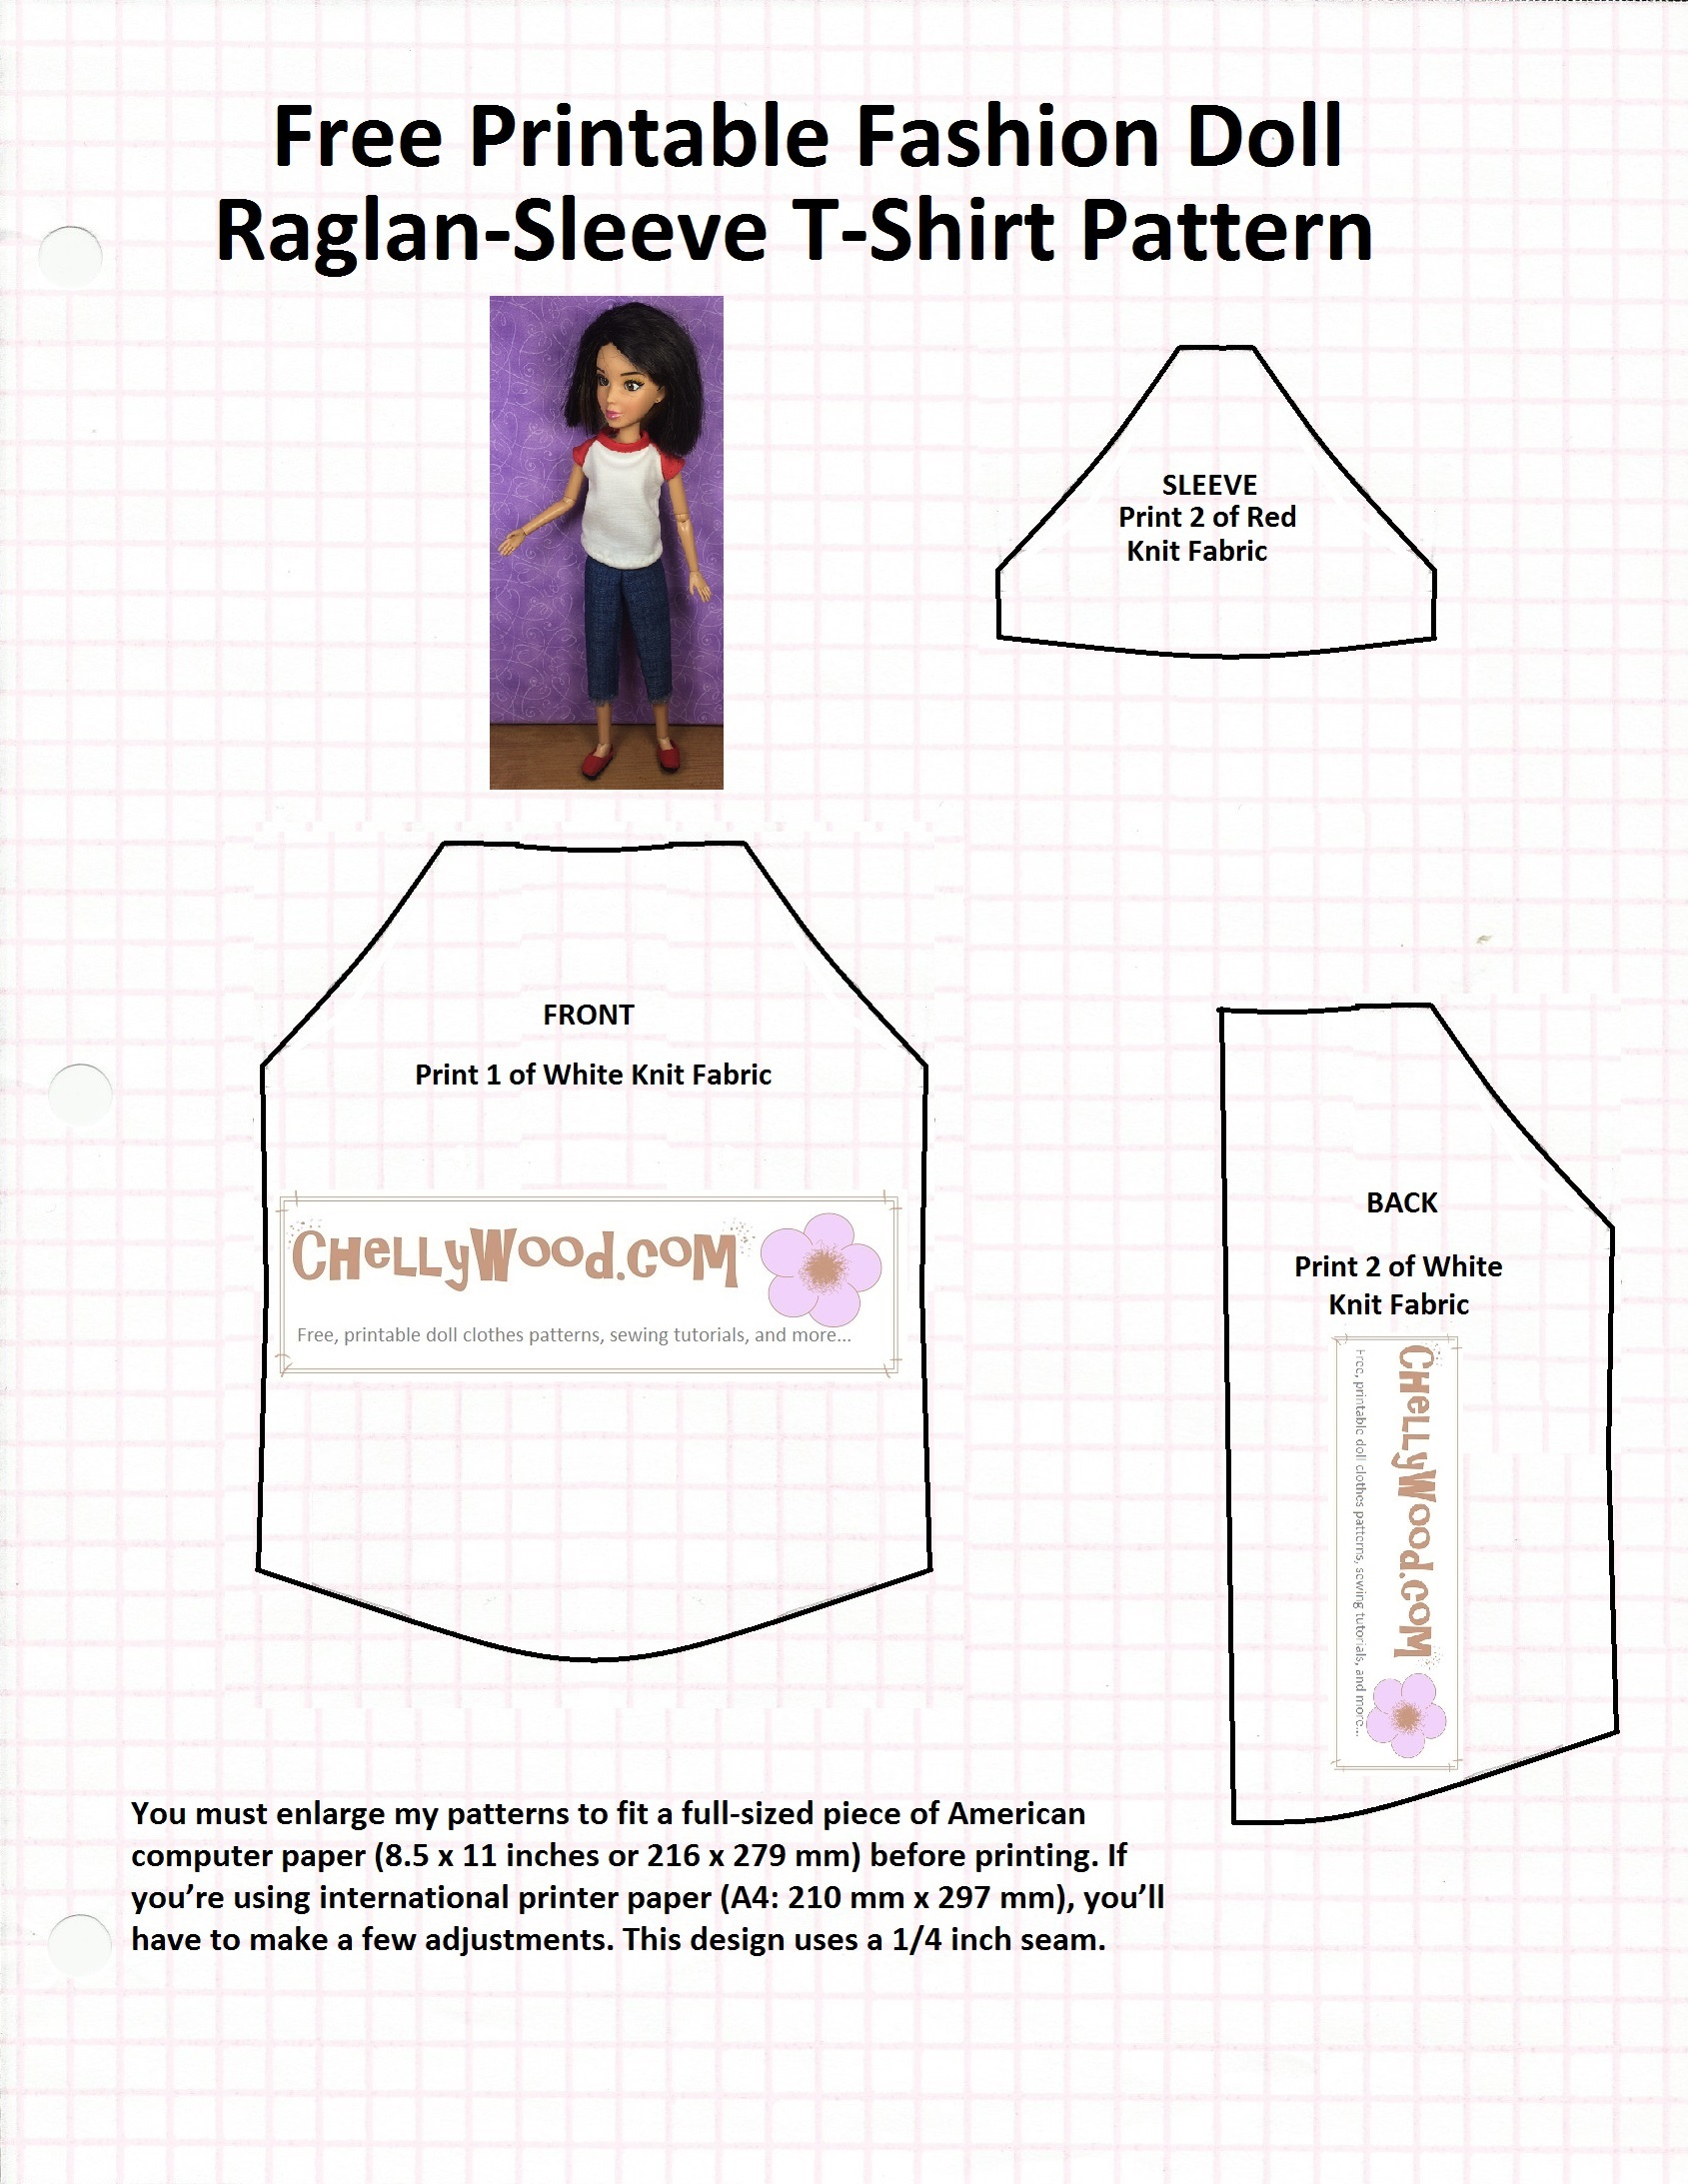 image relating to T Shirt Pattern Printable named Sew a Raglan-Sleeve #Tshirt for your #LivDoll w/a Free of charge